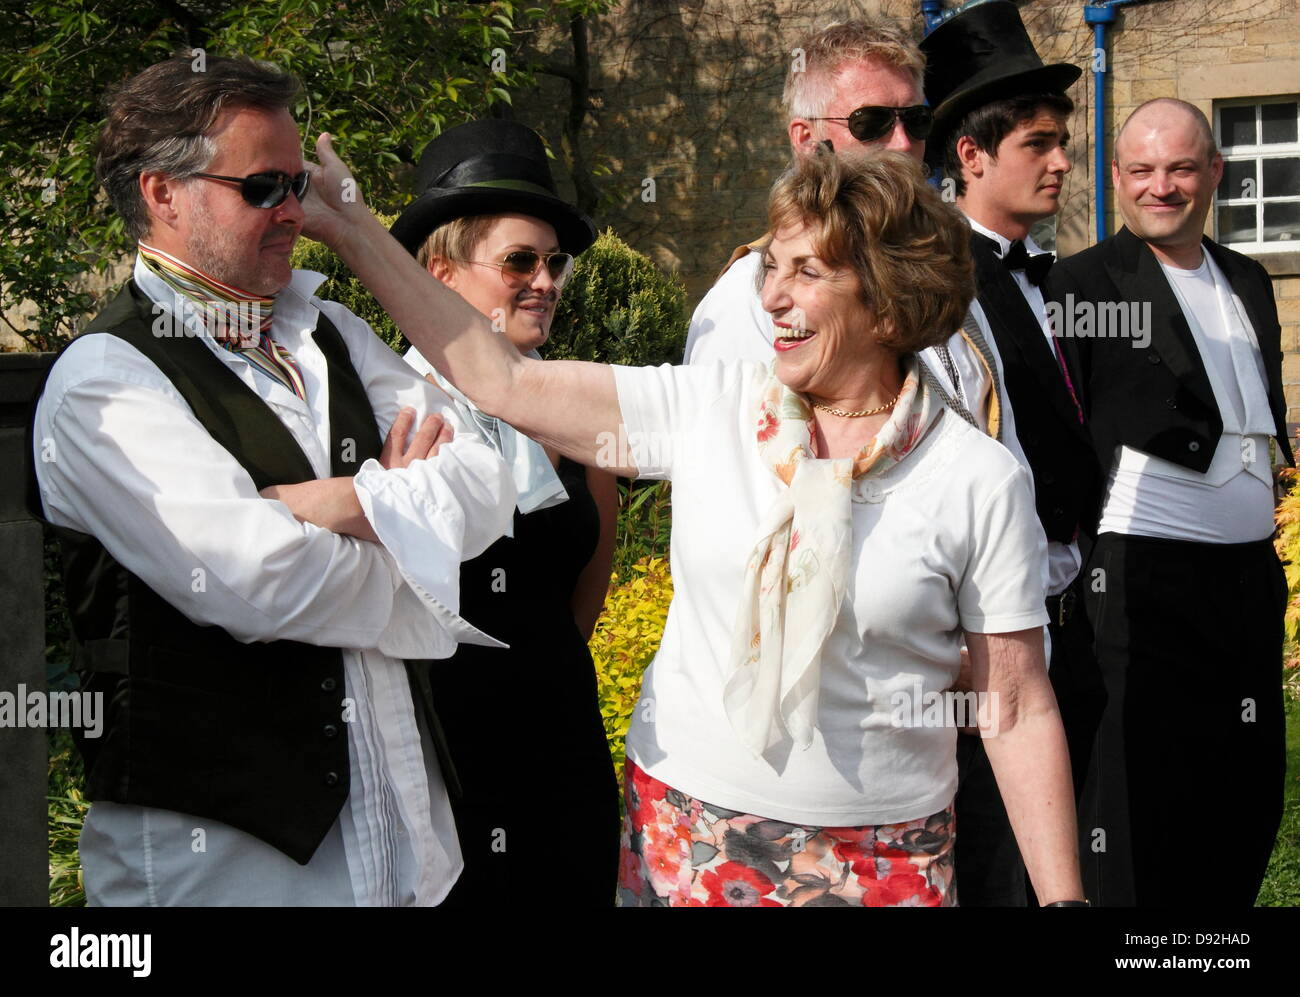 9th June 2013. Bakewell, Derbyshire, UK. Former MP Edwina Currie presides over the Best Dressed Darcy competition - Stock Image